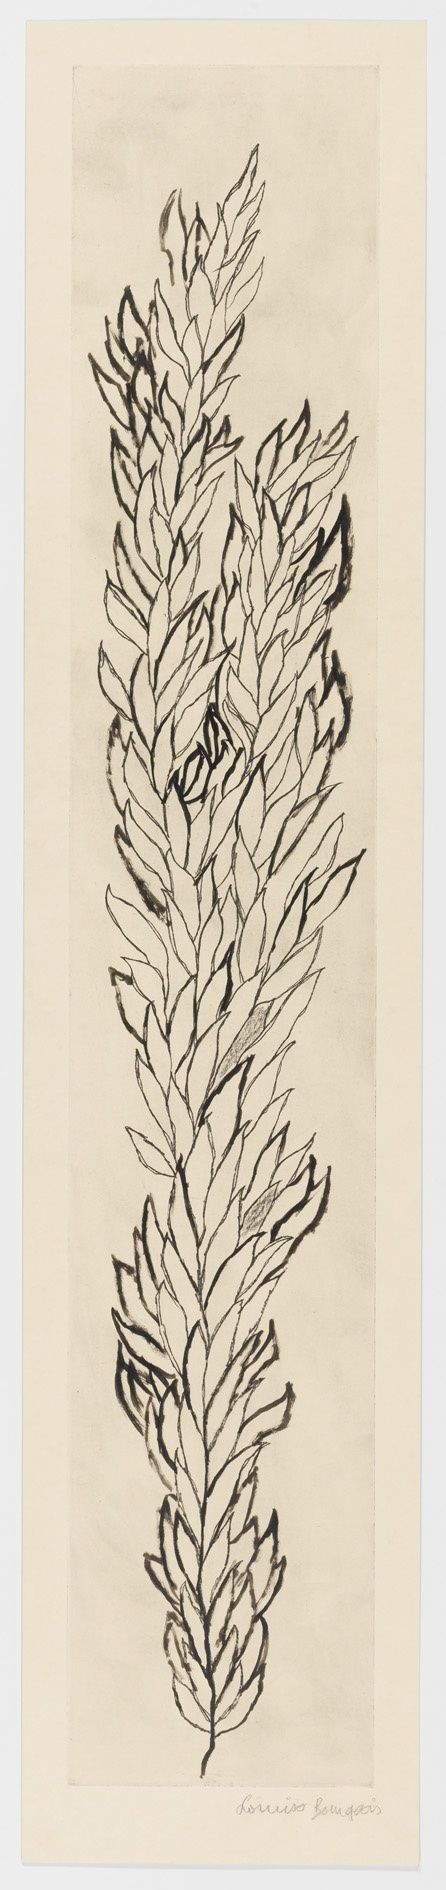 Louise Bourgeois - Leaves 1, 2006